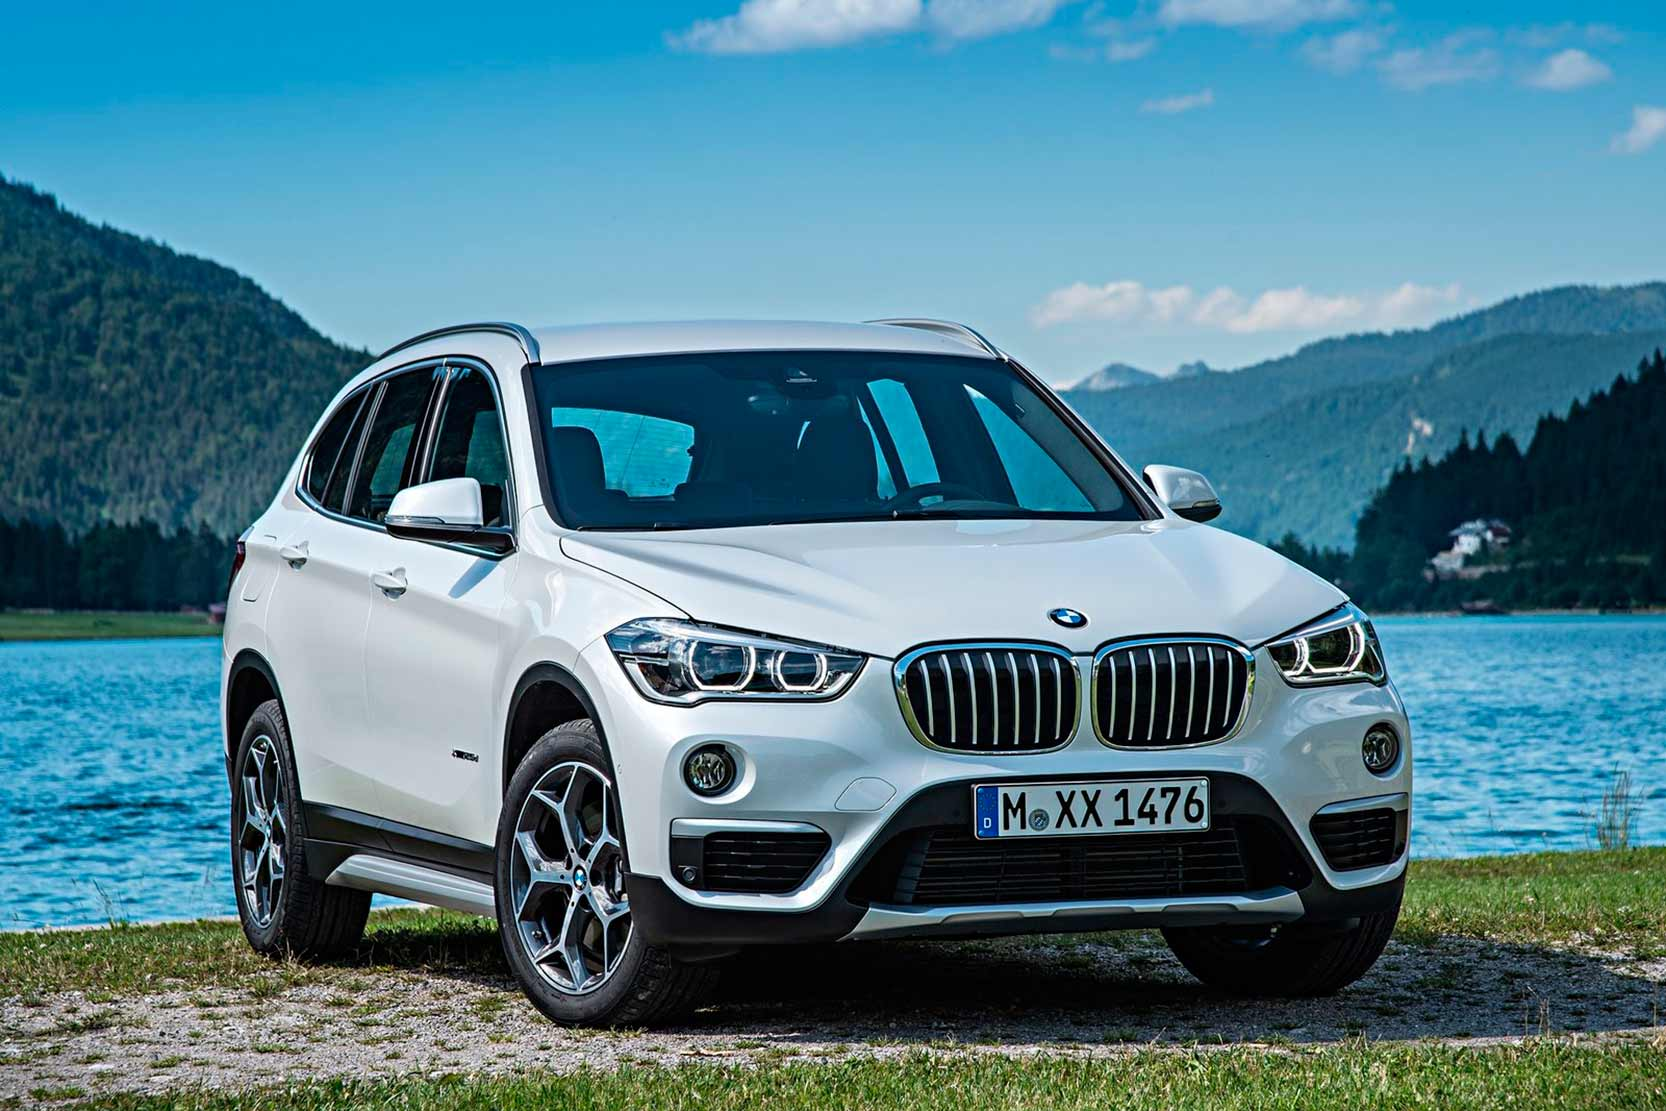 fiche technique bmw x1 xdrive20d 2017. Black Bedroom Furniture Sets. Home Design Ideas